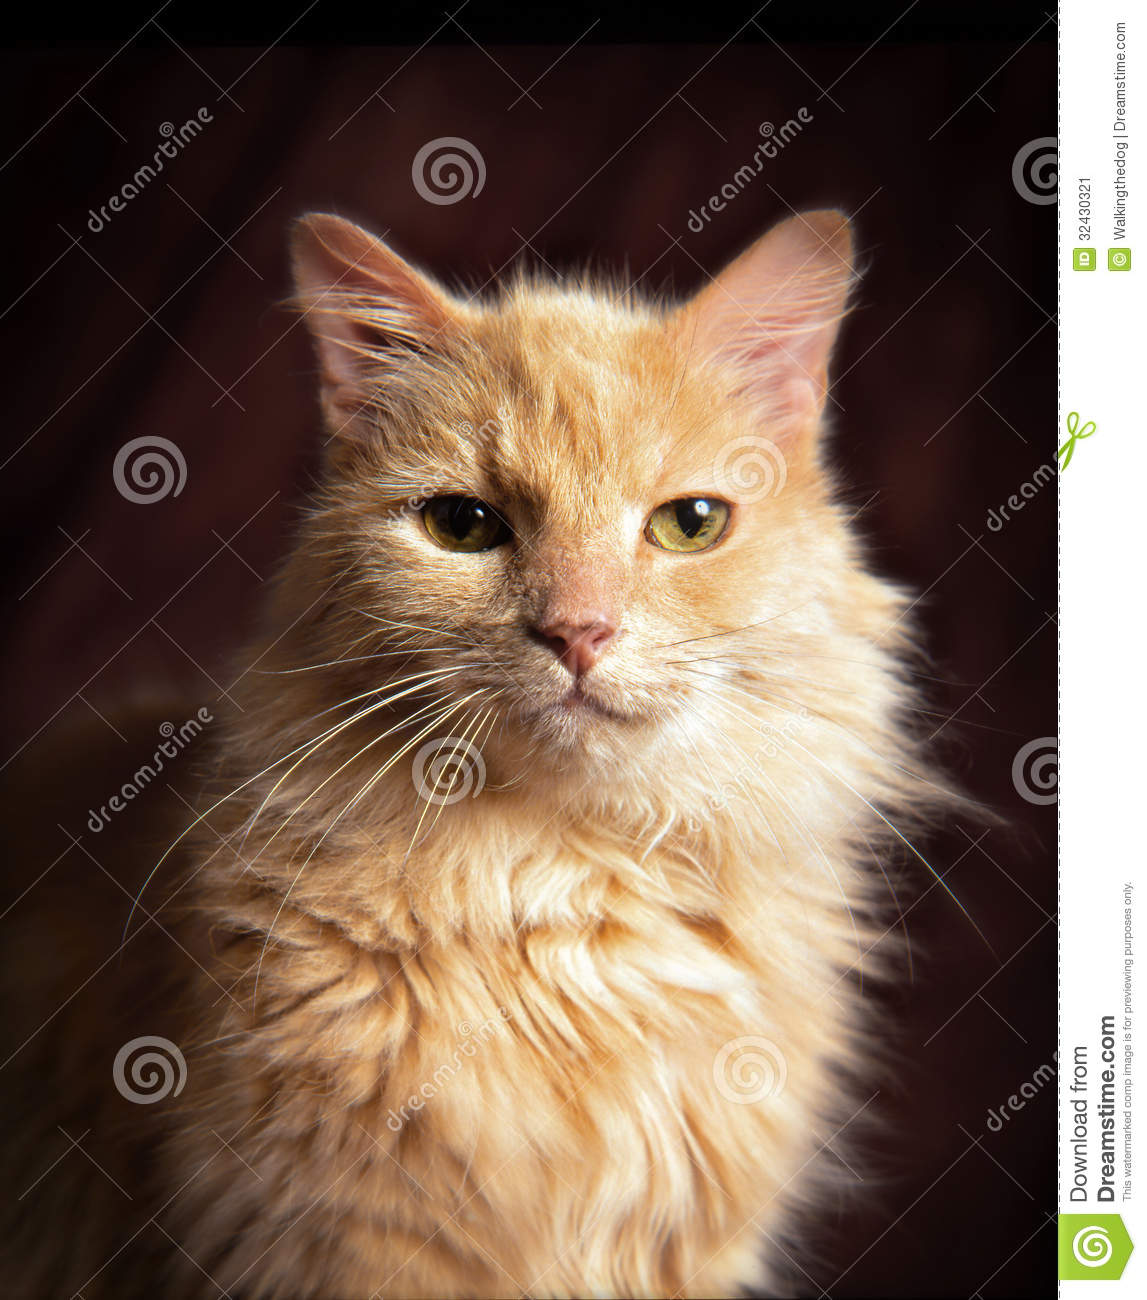 Yellow domestic cat stock image. Image of lovely, curious ...